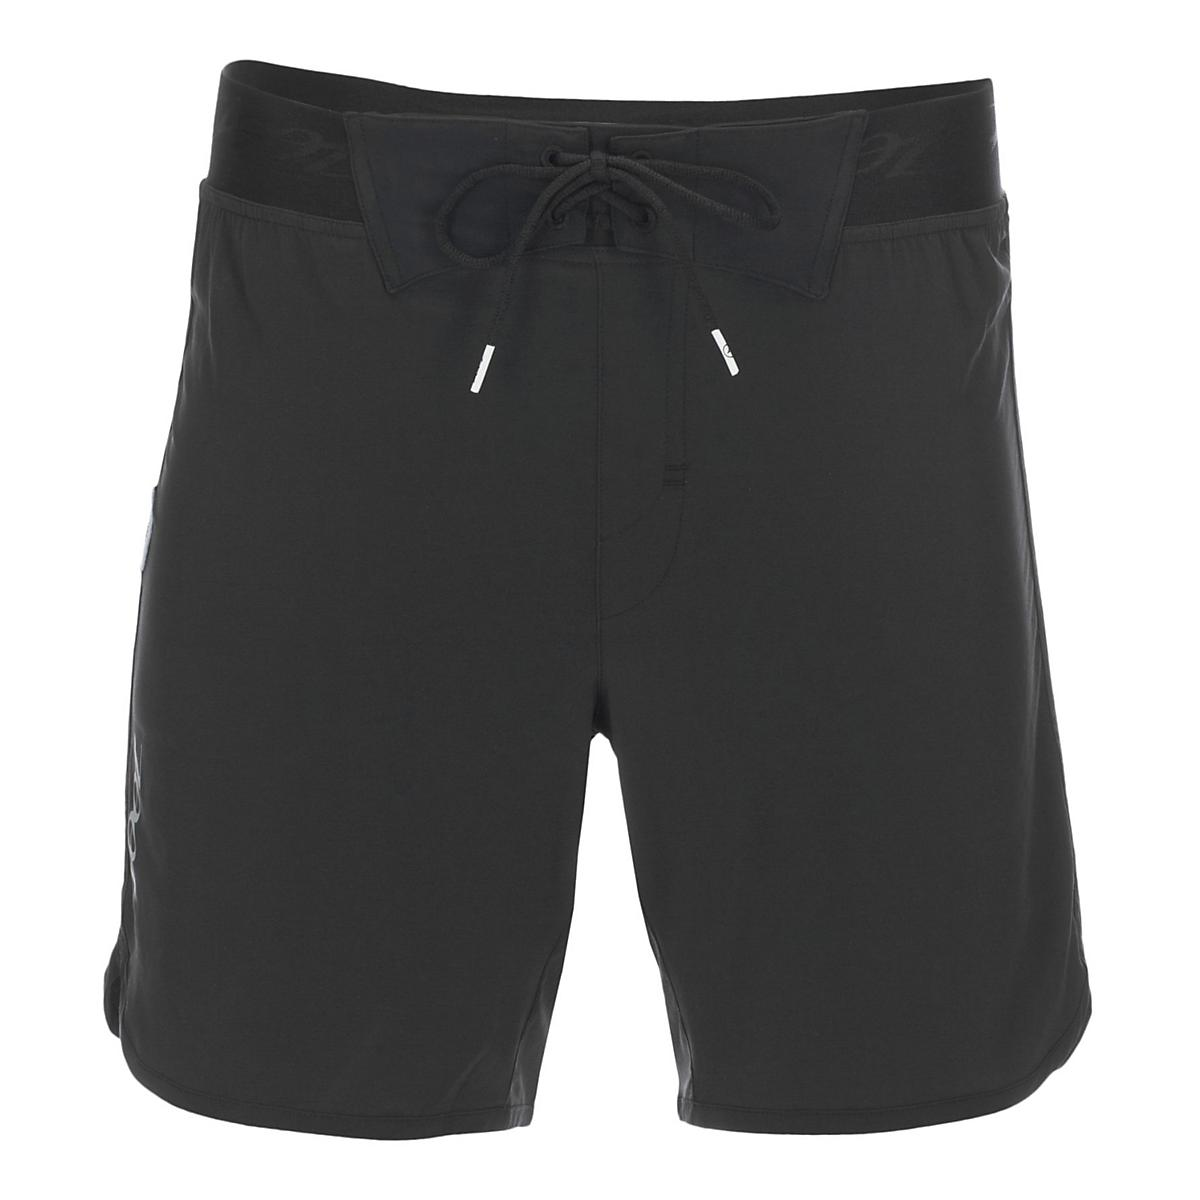 Men's Zoot�2-1 Board Short 7